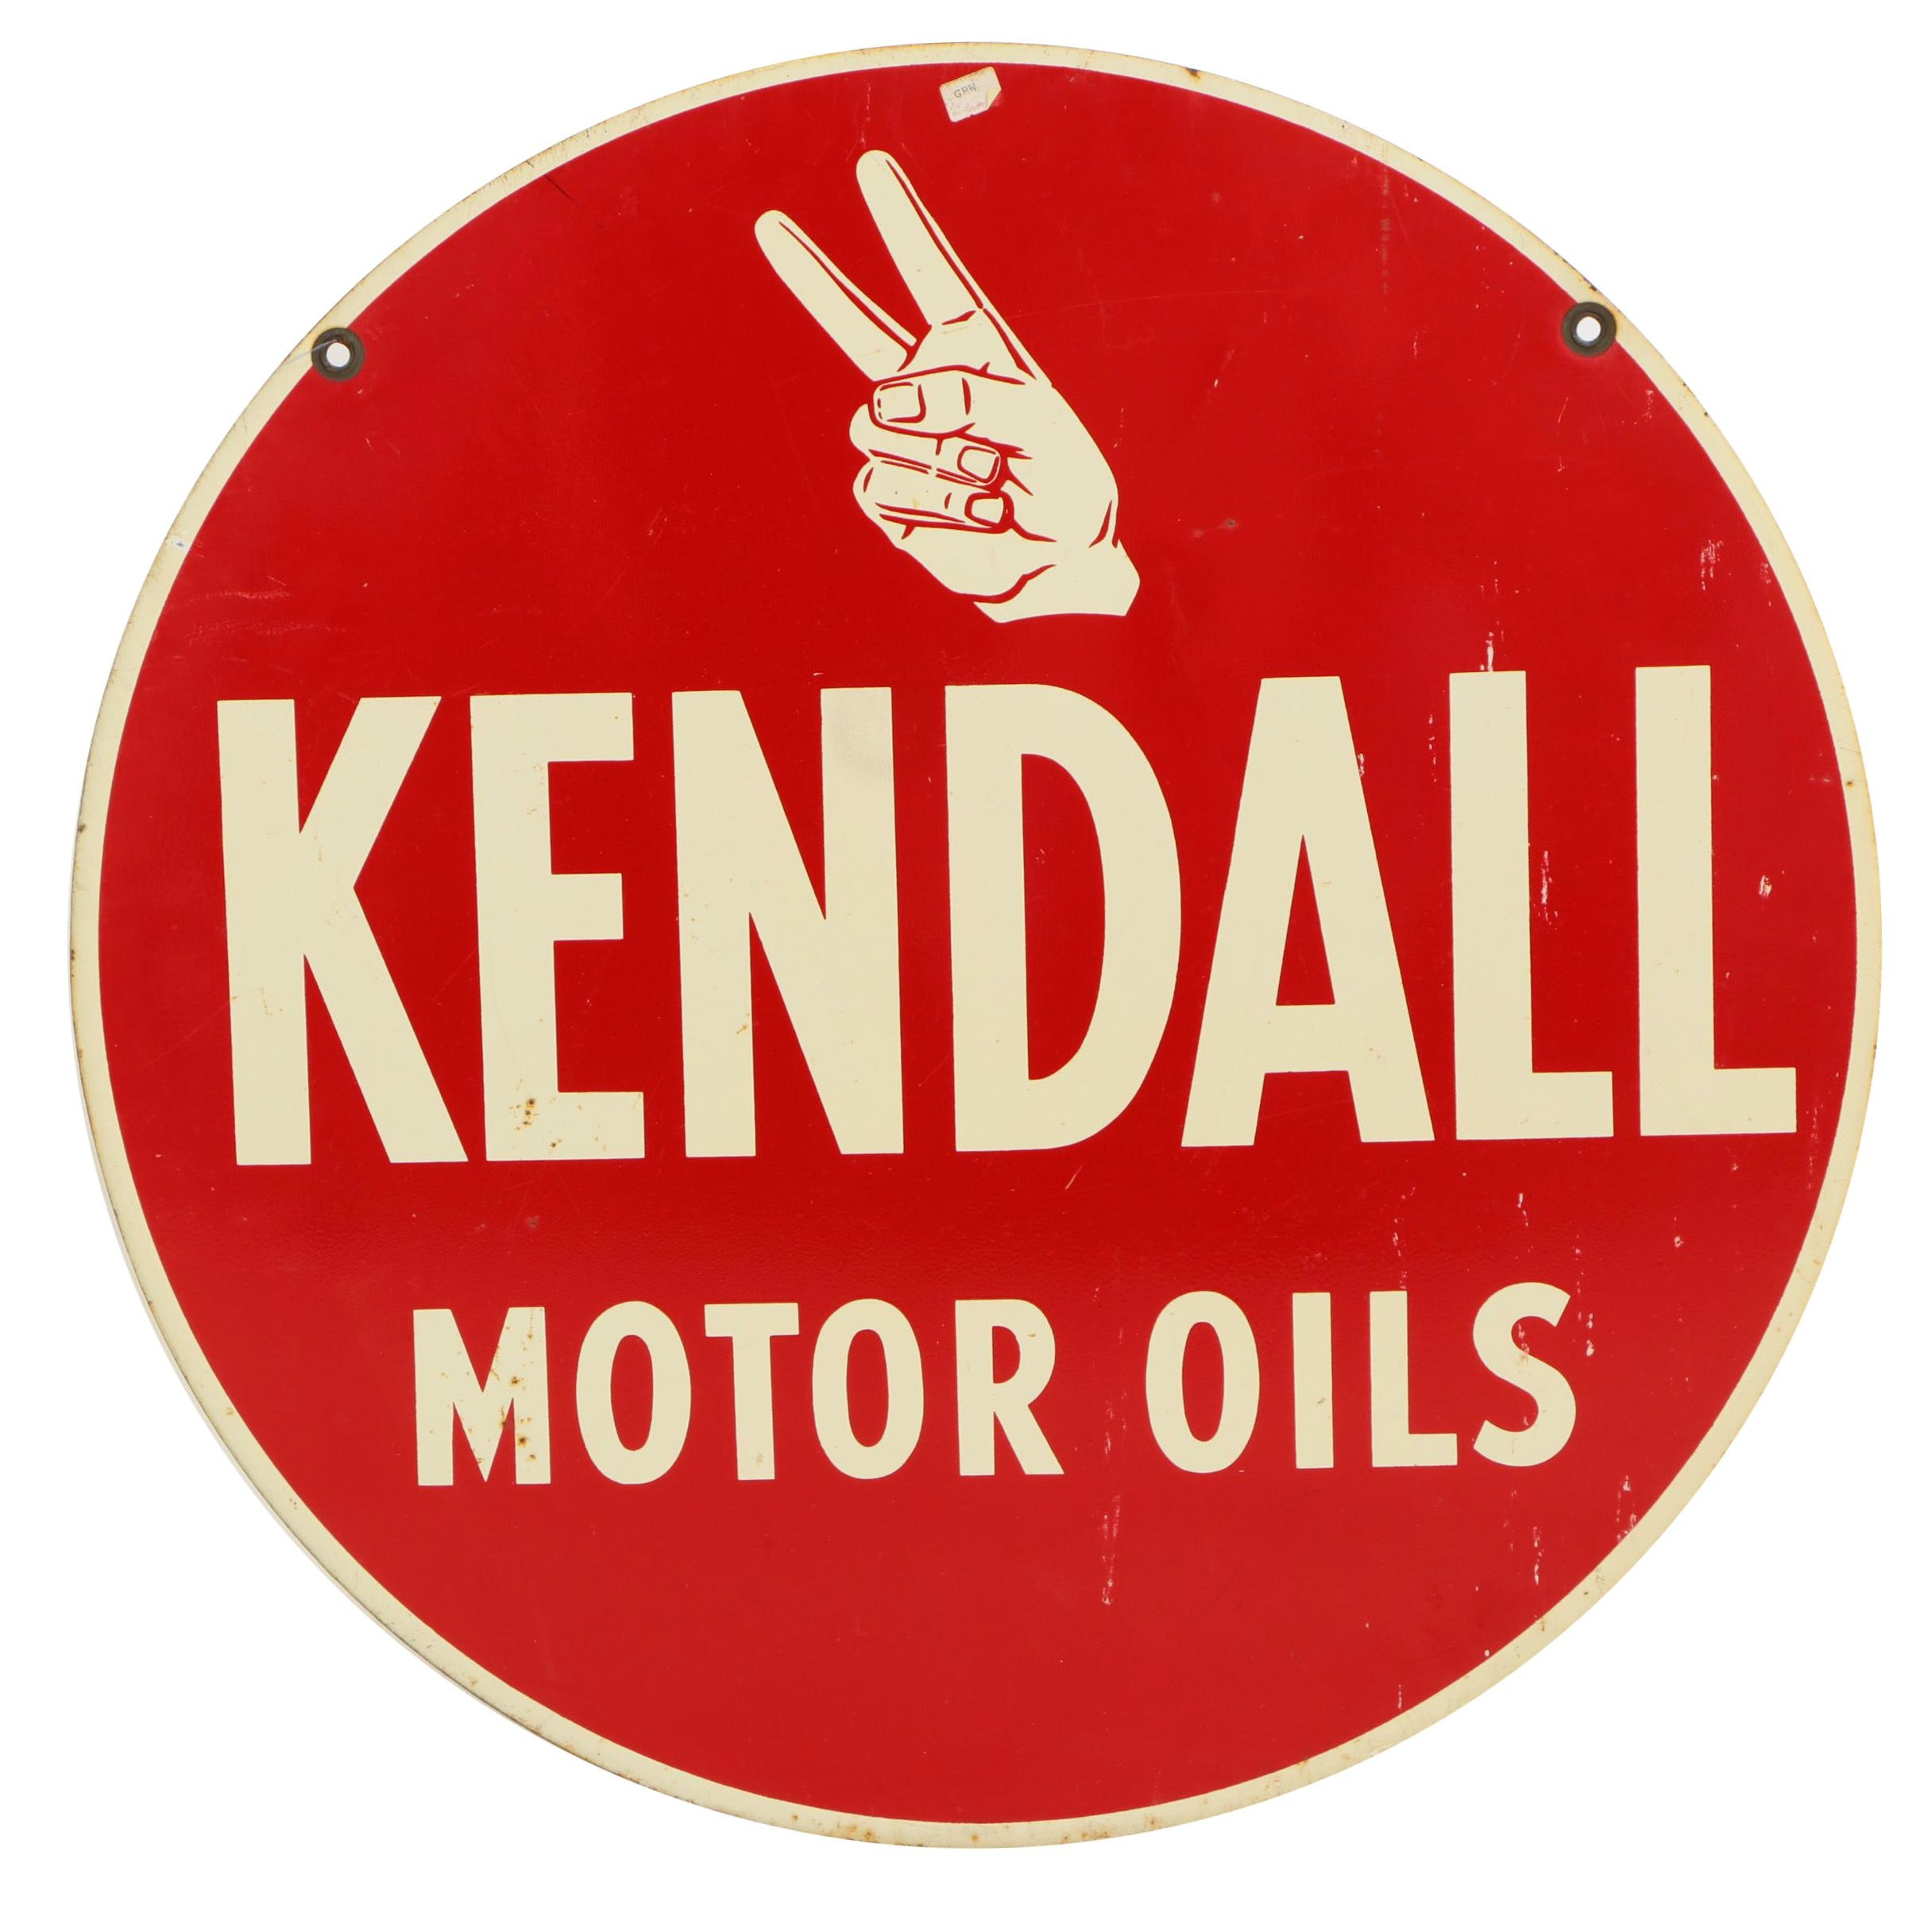 Kendall Motor Oils Enameled Metal Sign, 20th Century